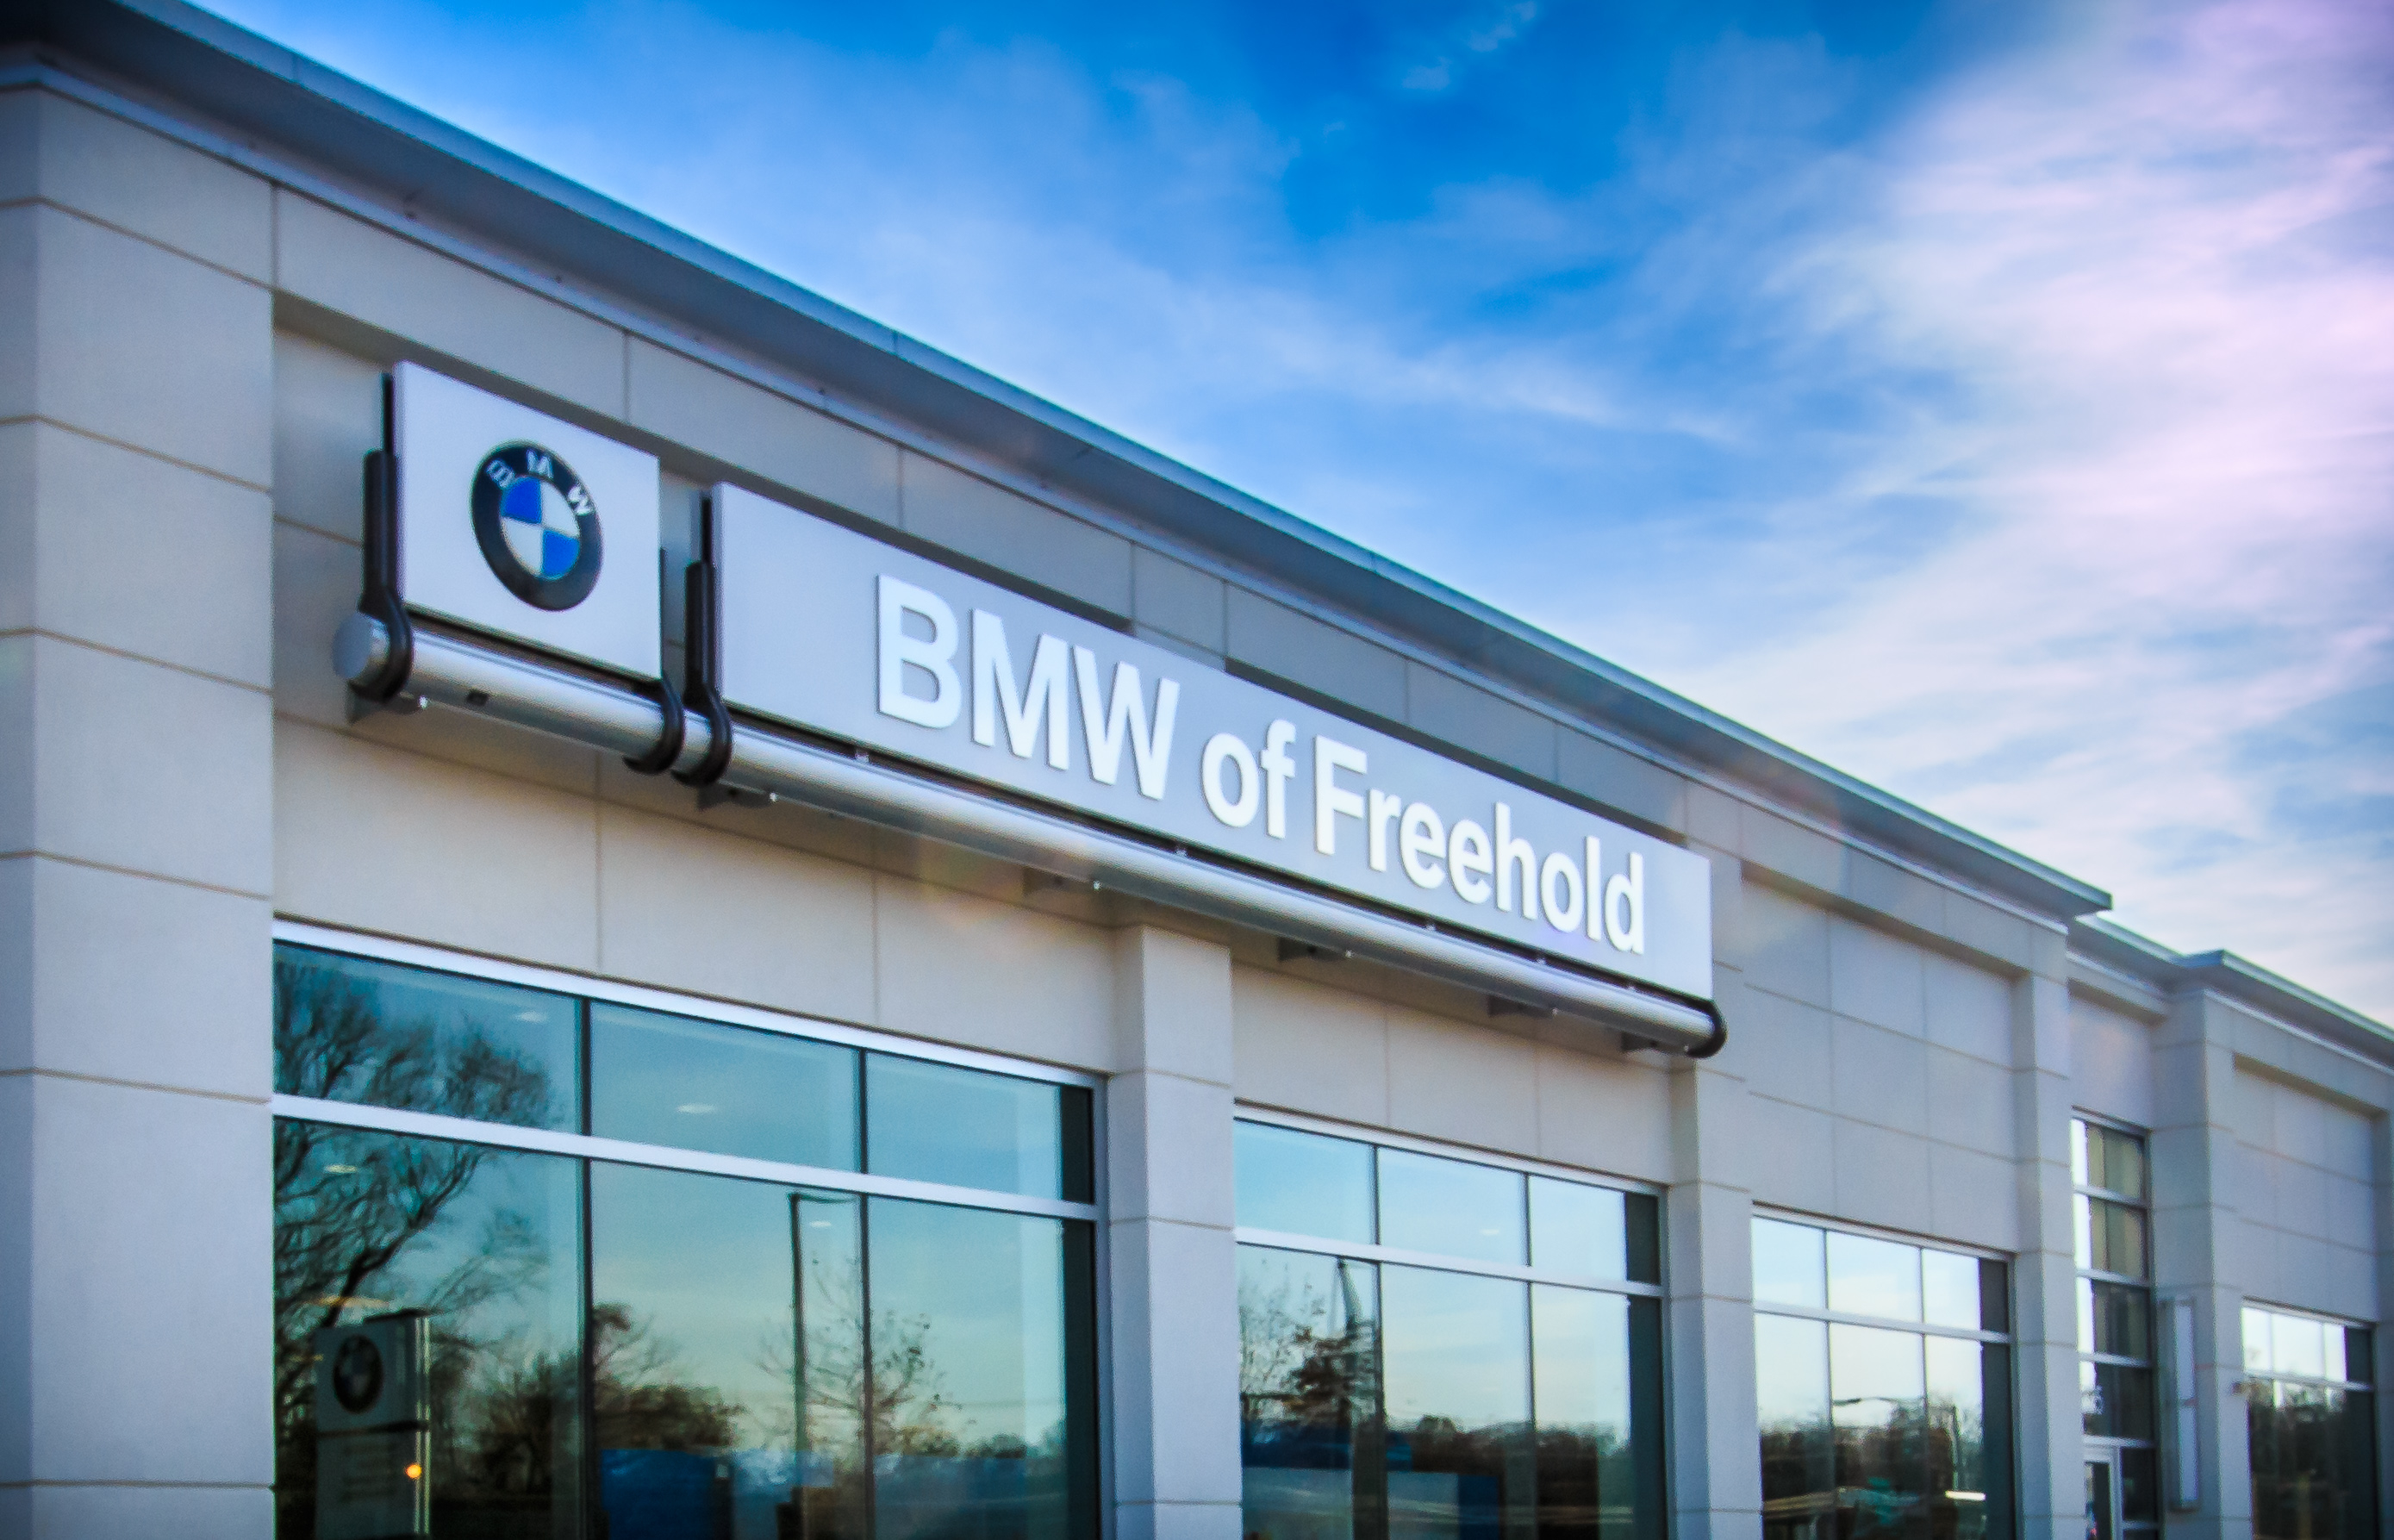 bmw of freehold 4225 us highway 9 freehold nj. Black Bedroom Furniture Sets. Home Design Ideas